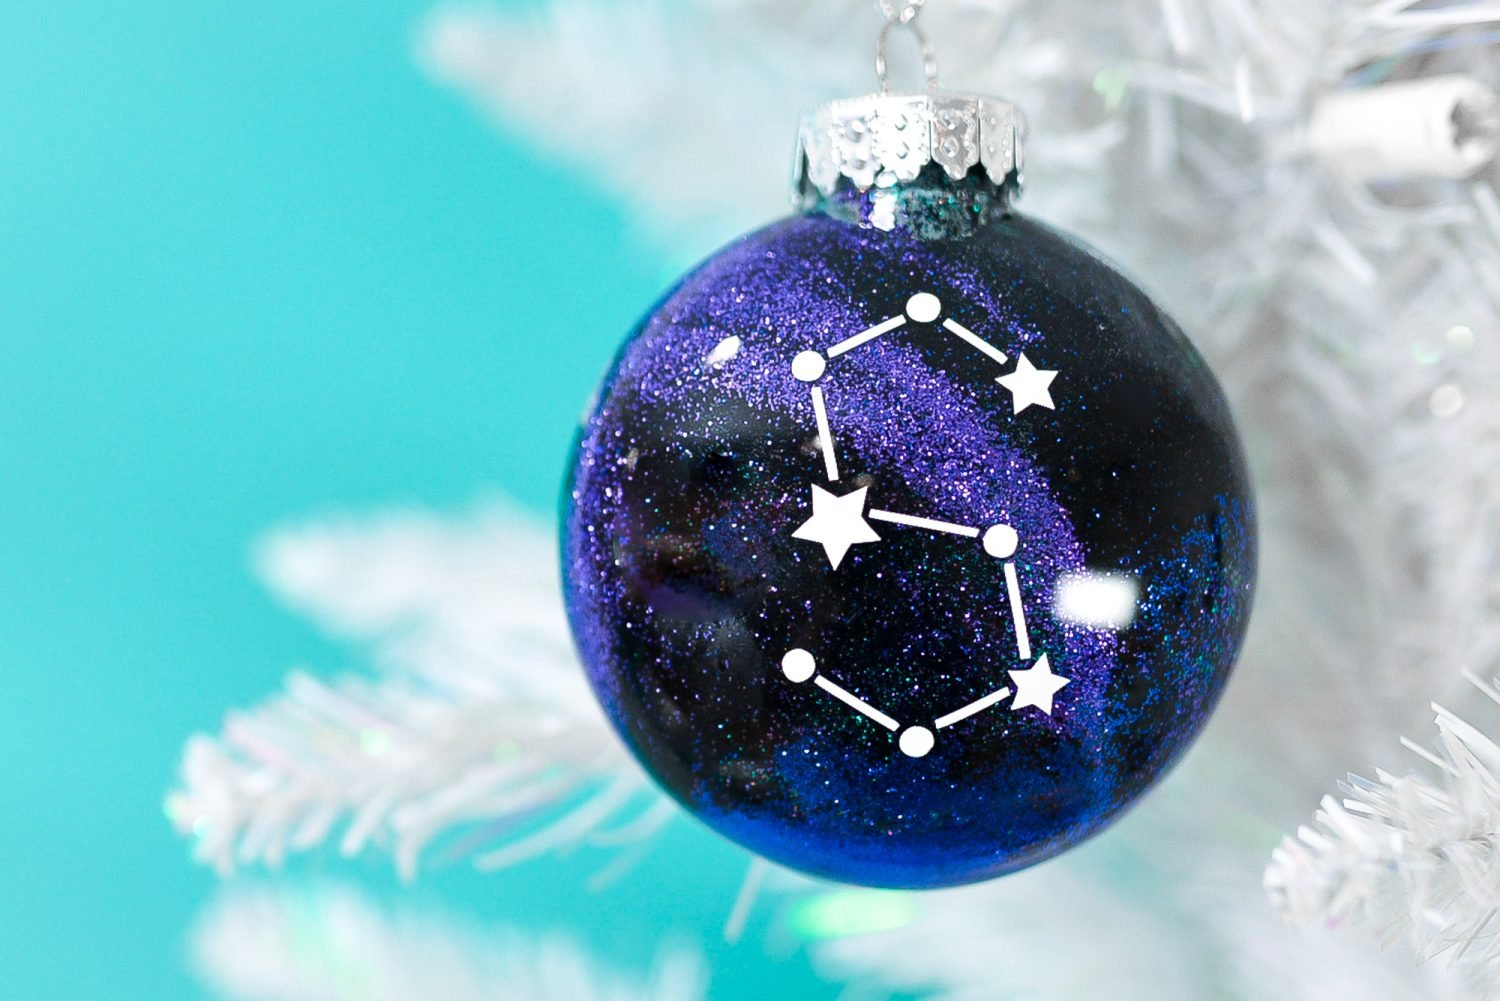 Finished constellation glitter ornament hanging from white Christmas tree